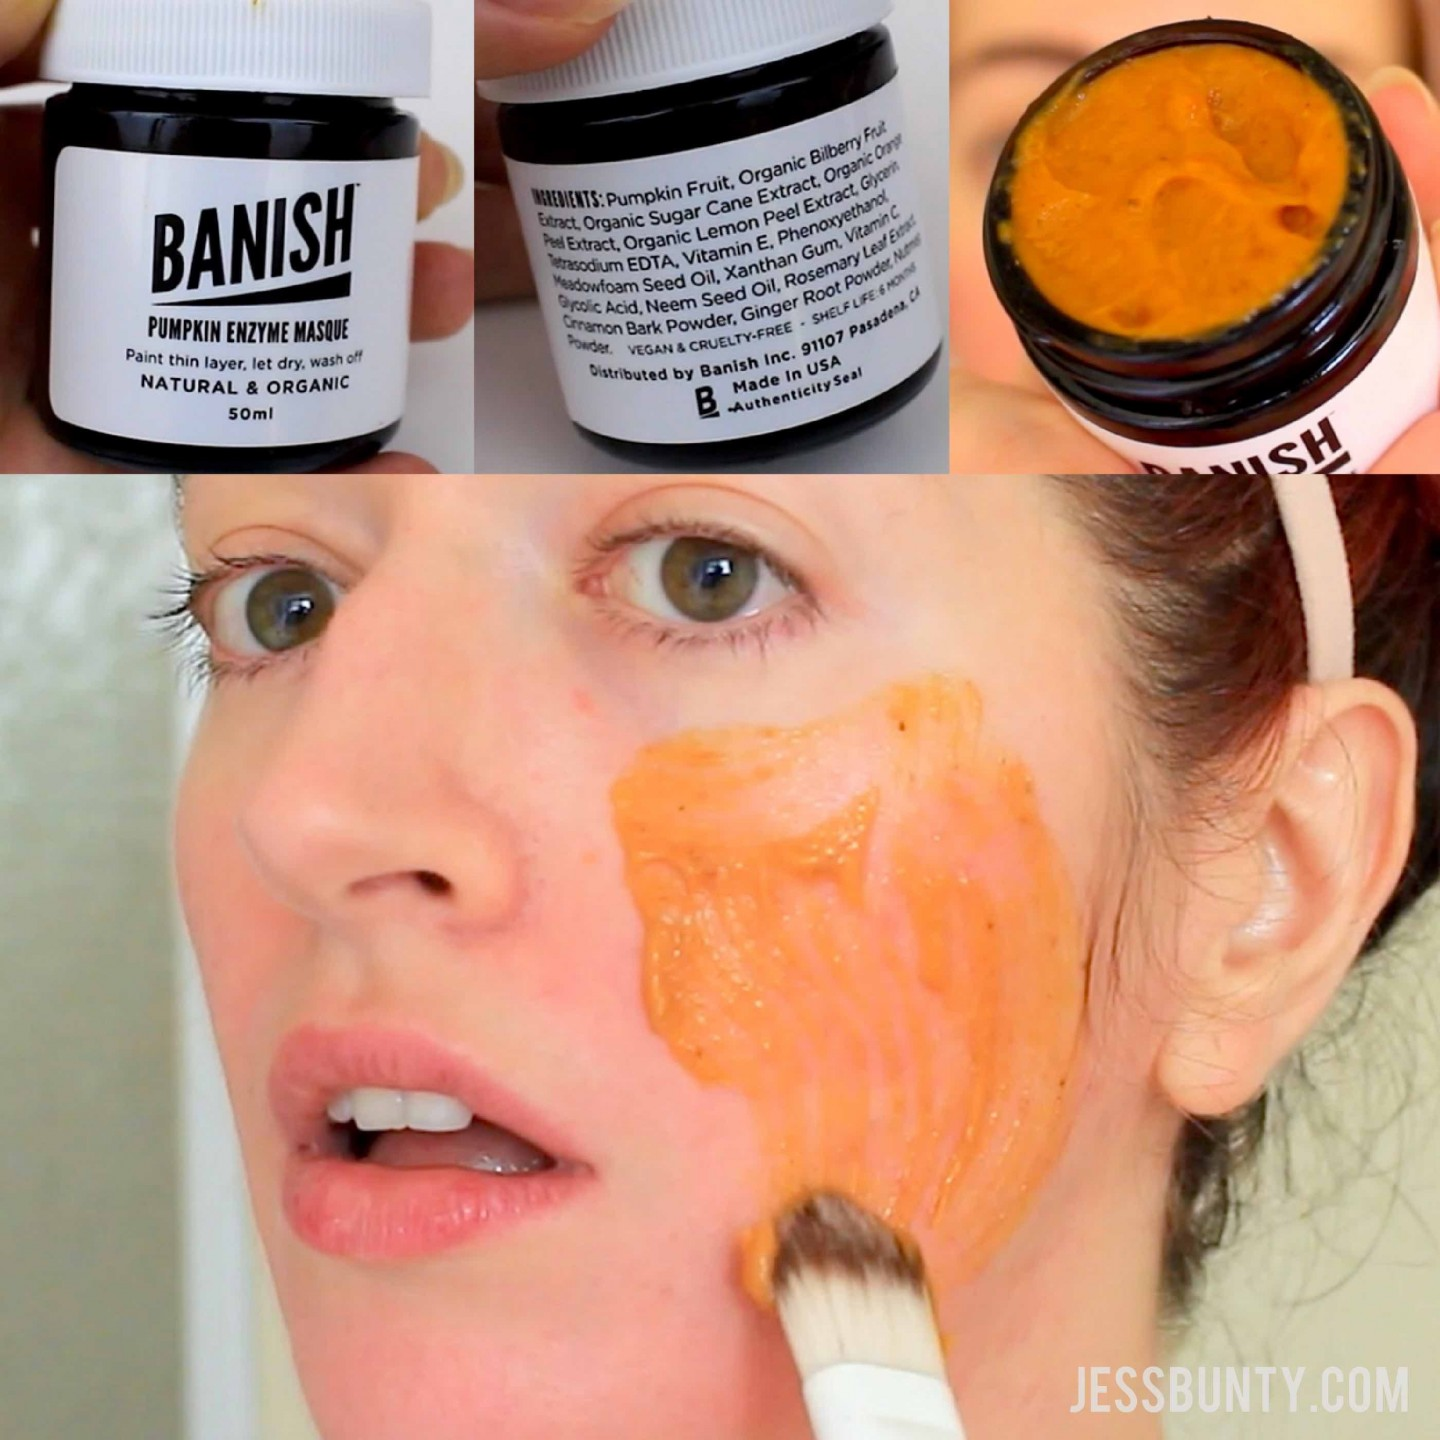 Banish Acne Scars Pumpkin Enzyme Mask Review Jess Bunty